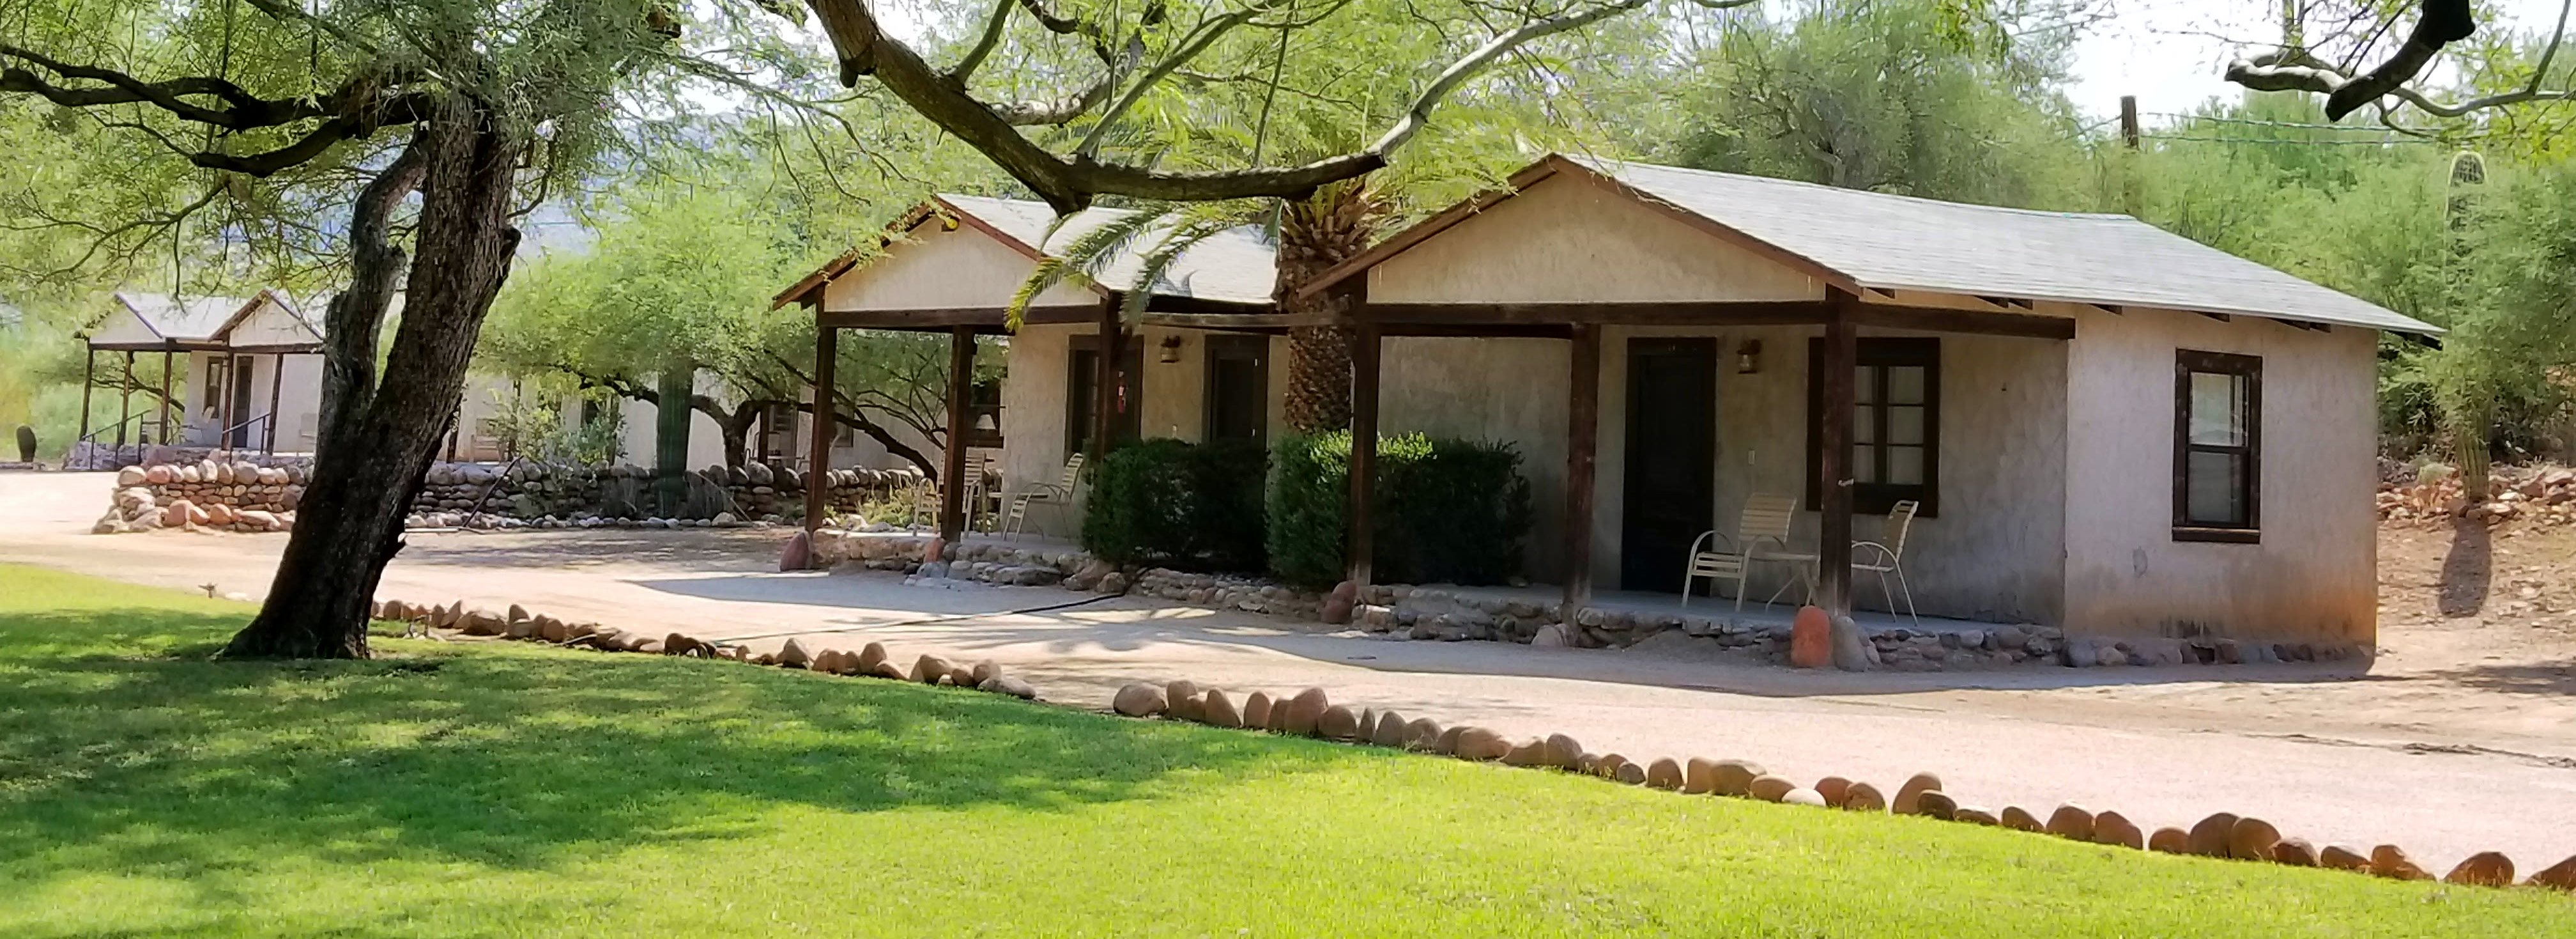 Cabins & Rates | Saguaro Lake Ranch | Western Guest Ranch